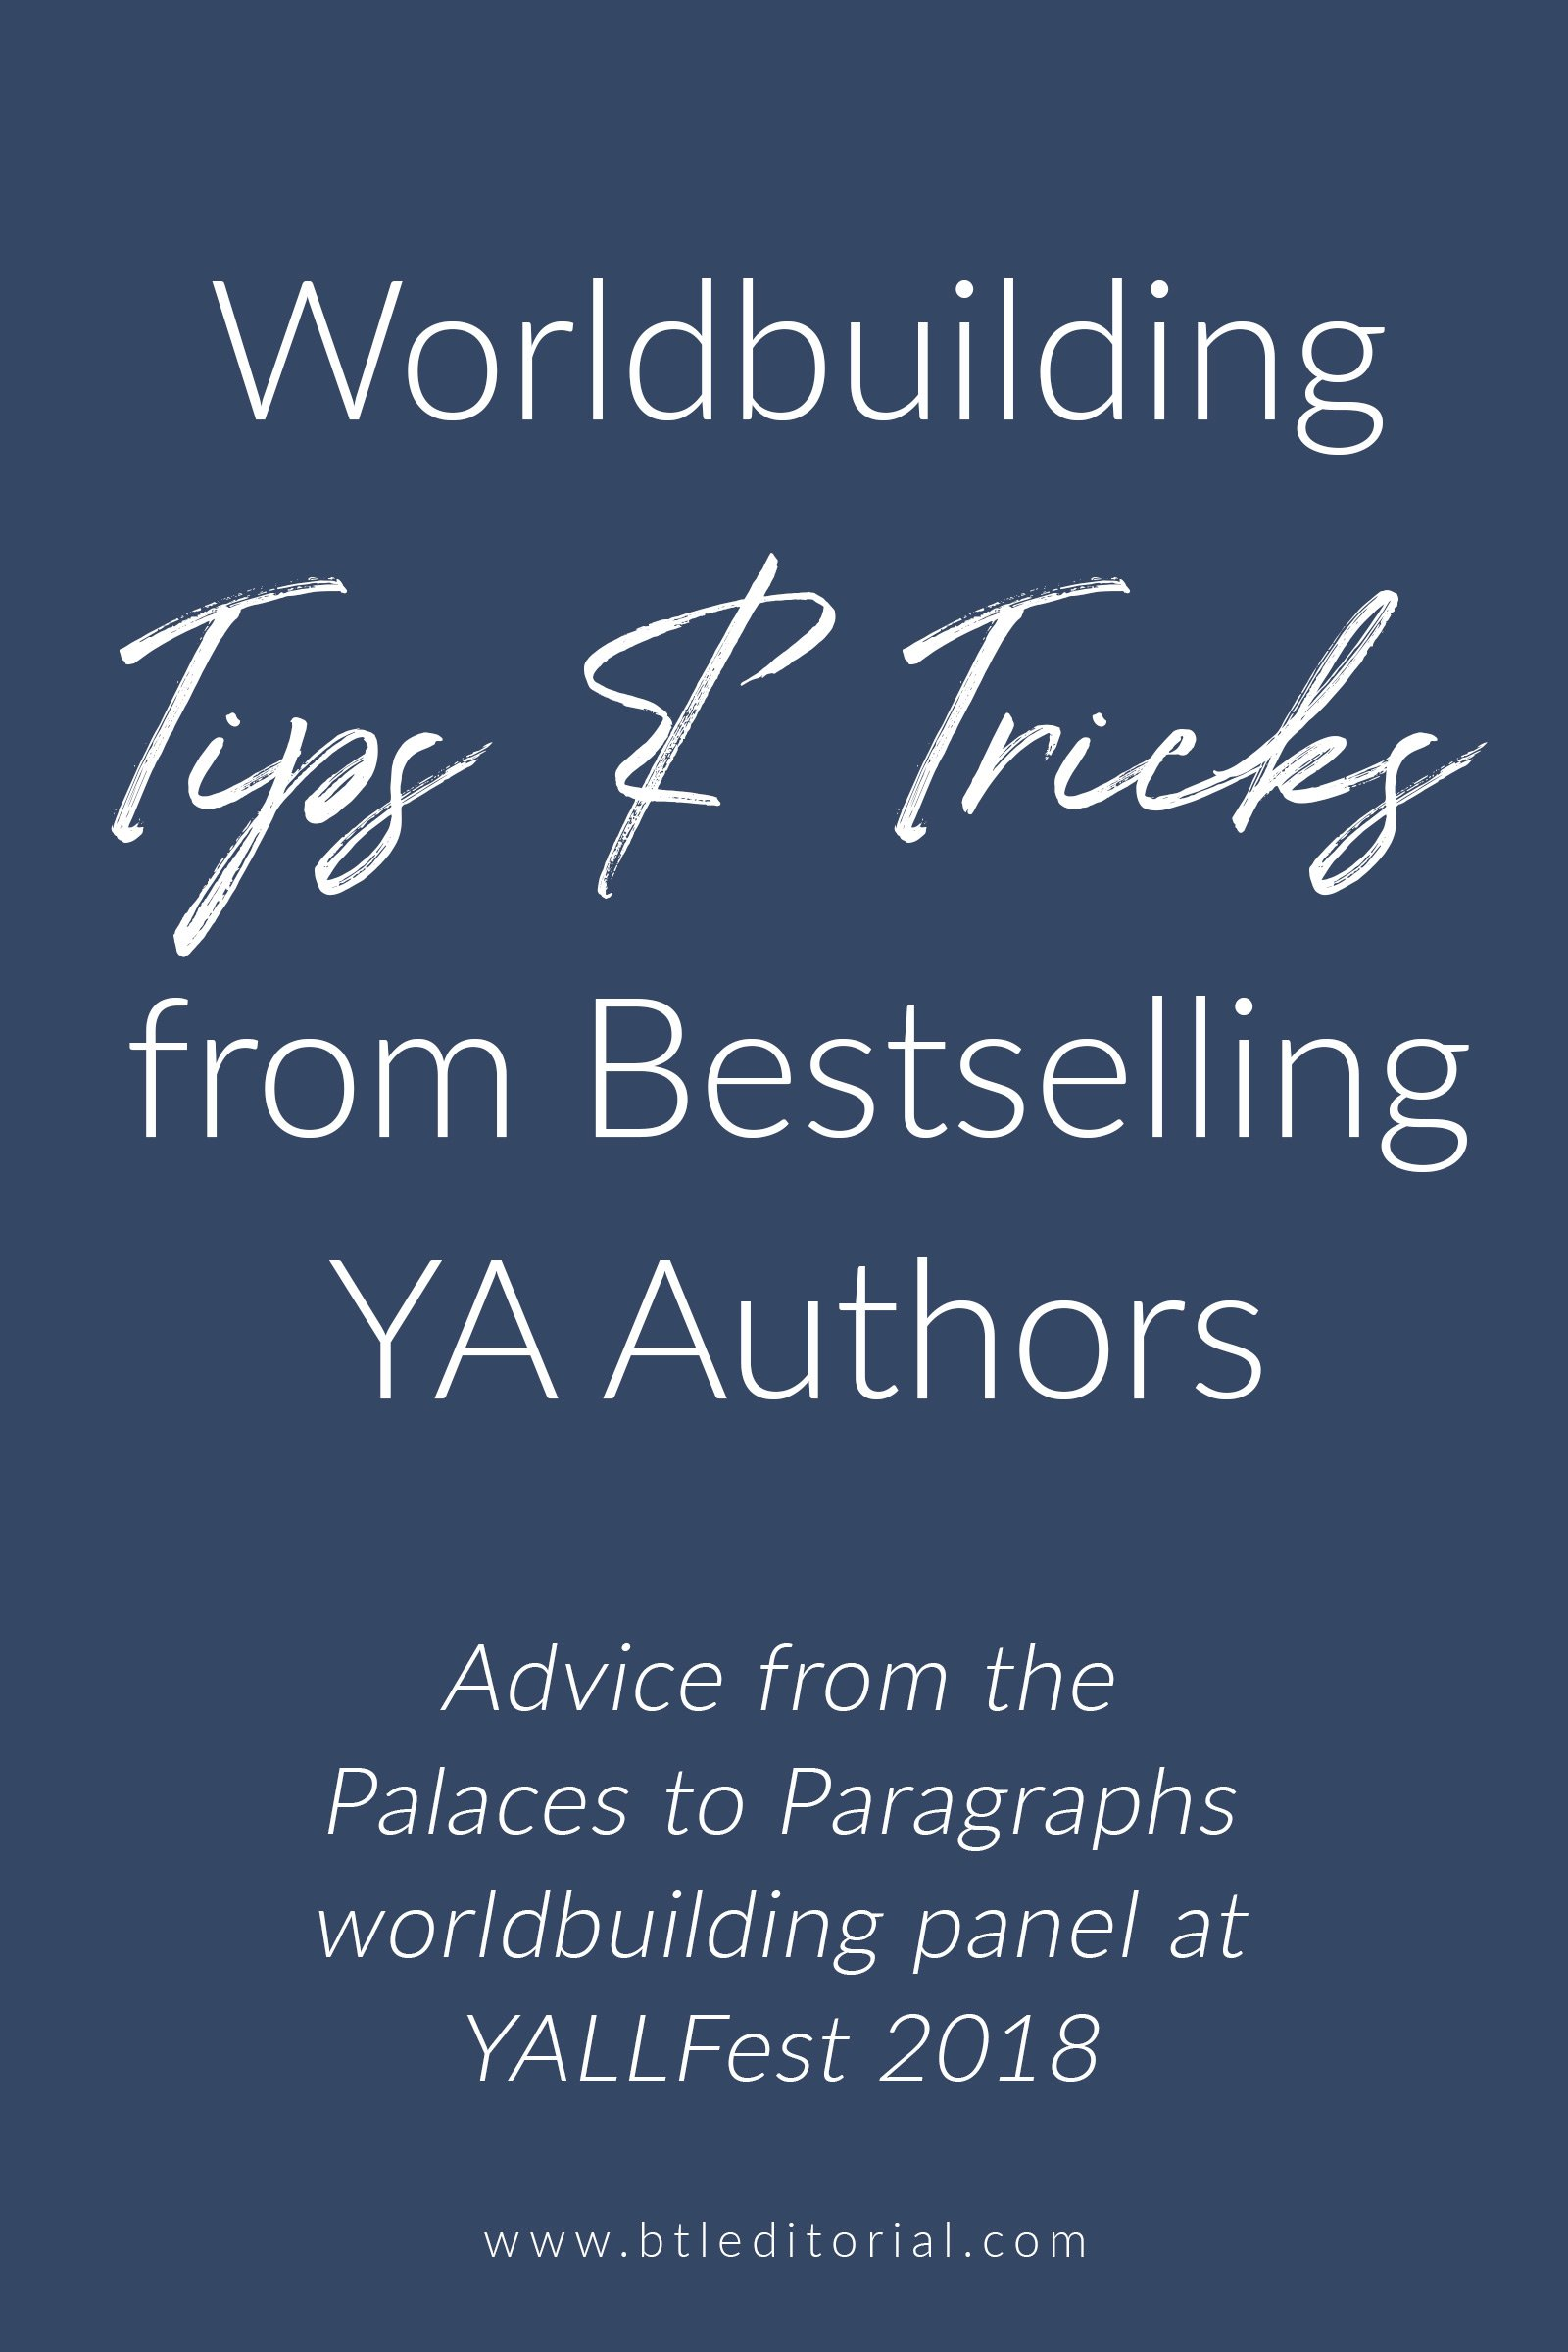 Palaces from Paragraphs: Lessons from the YA Worldbuilding Panel at YALLFest 2018 | How to create a fictional world; questions to ask yourself while worldbuilding; worldbuilding tips